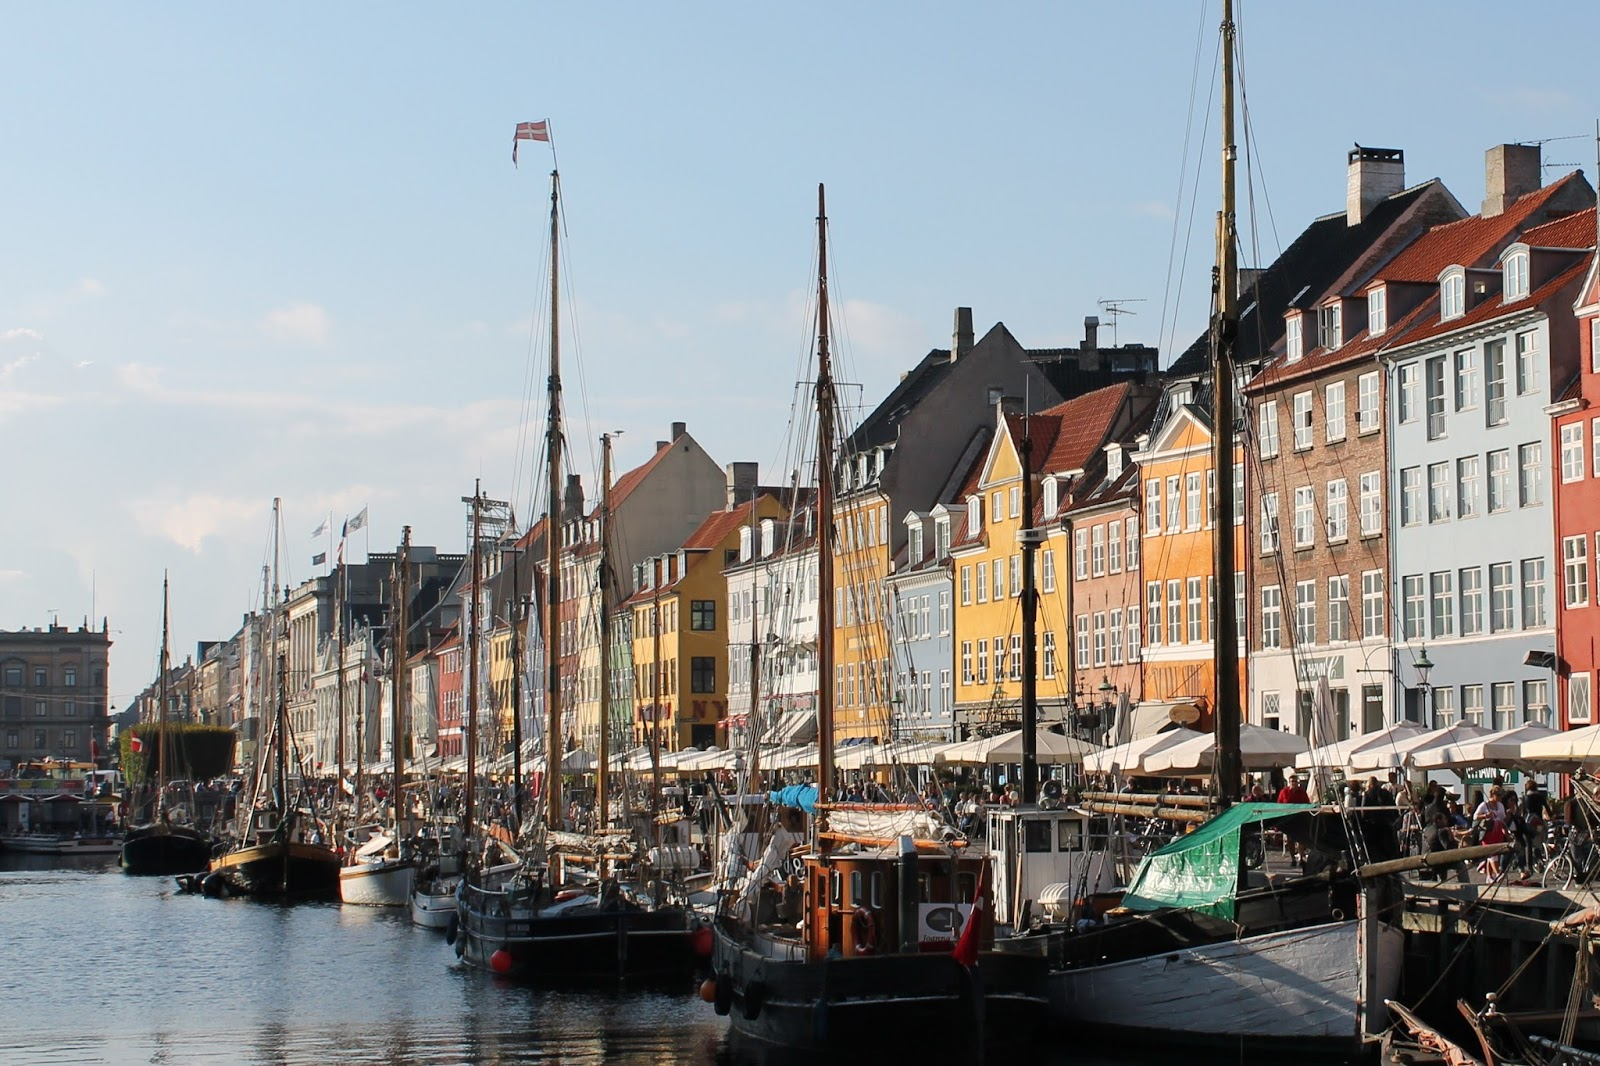 Copenhagen Day One Post feat. the Nyhavn, MAD (Modern American Diner) and 7-Eleven - Tourist, Holiday, Denmark